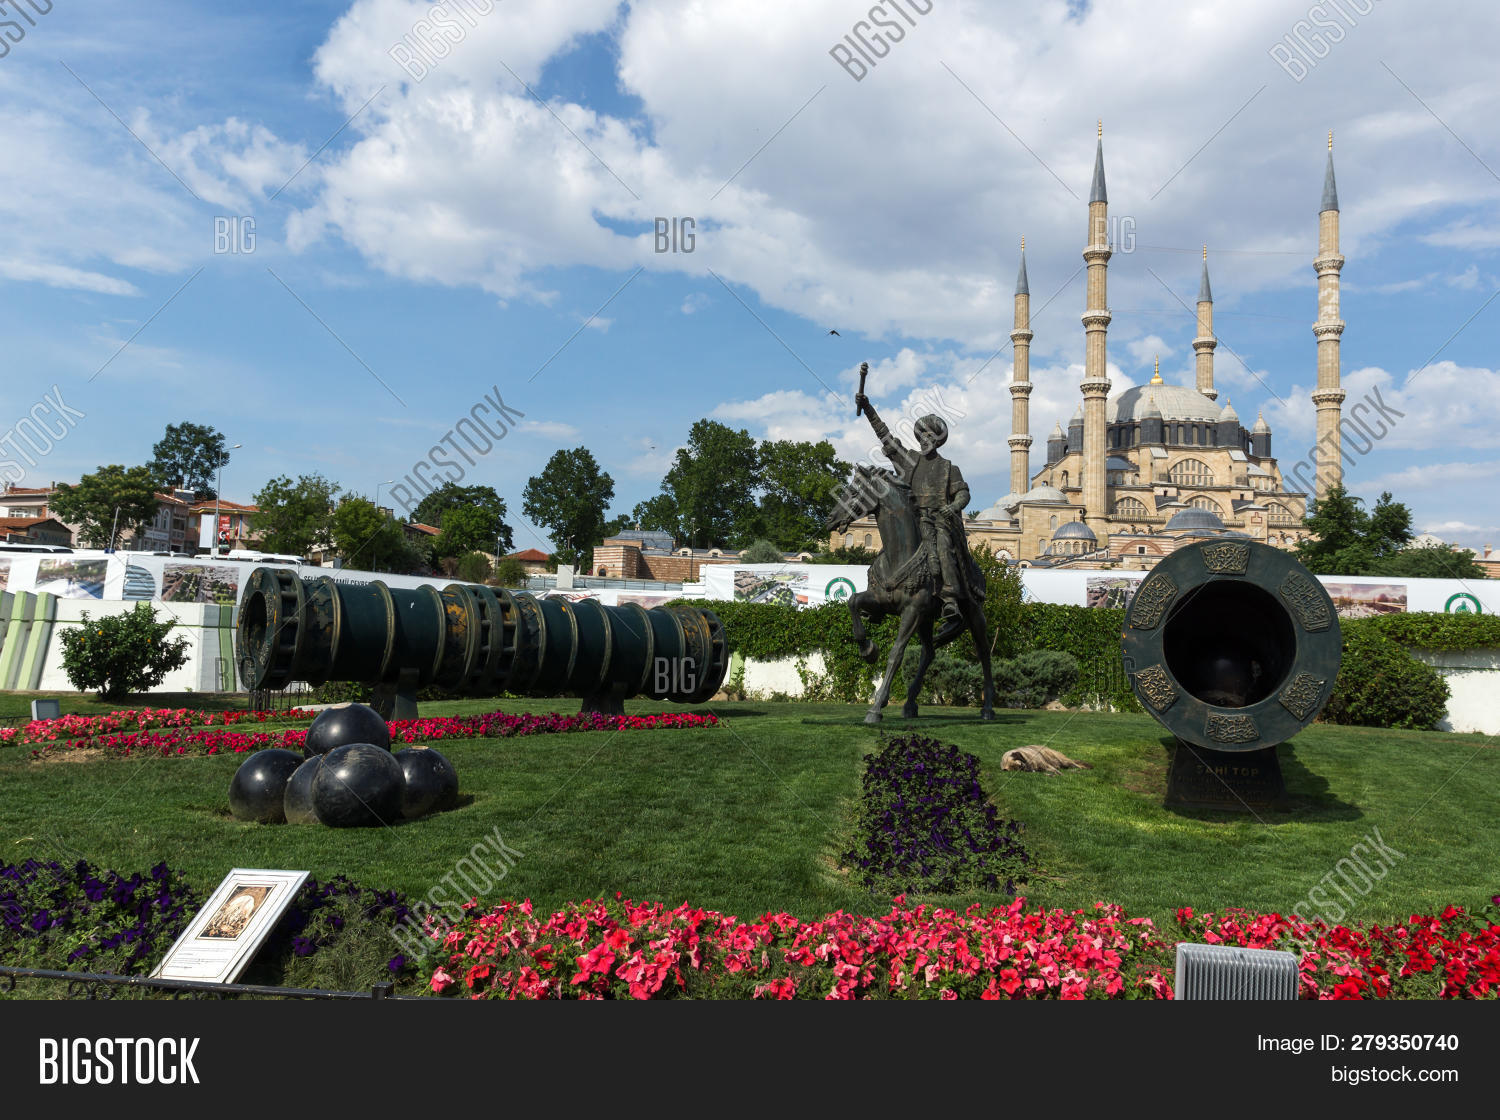 Super Edirne Turkey May Image Photo Free Trial Bigstock Gmtry Best Dining Table And Chair Ideas Images Gmtryco